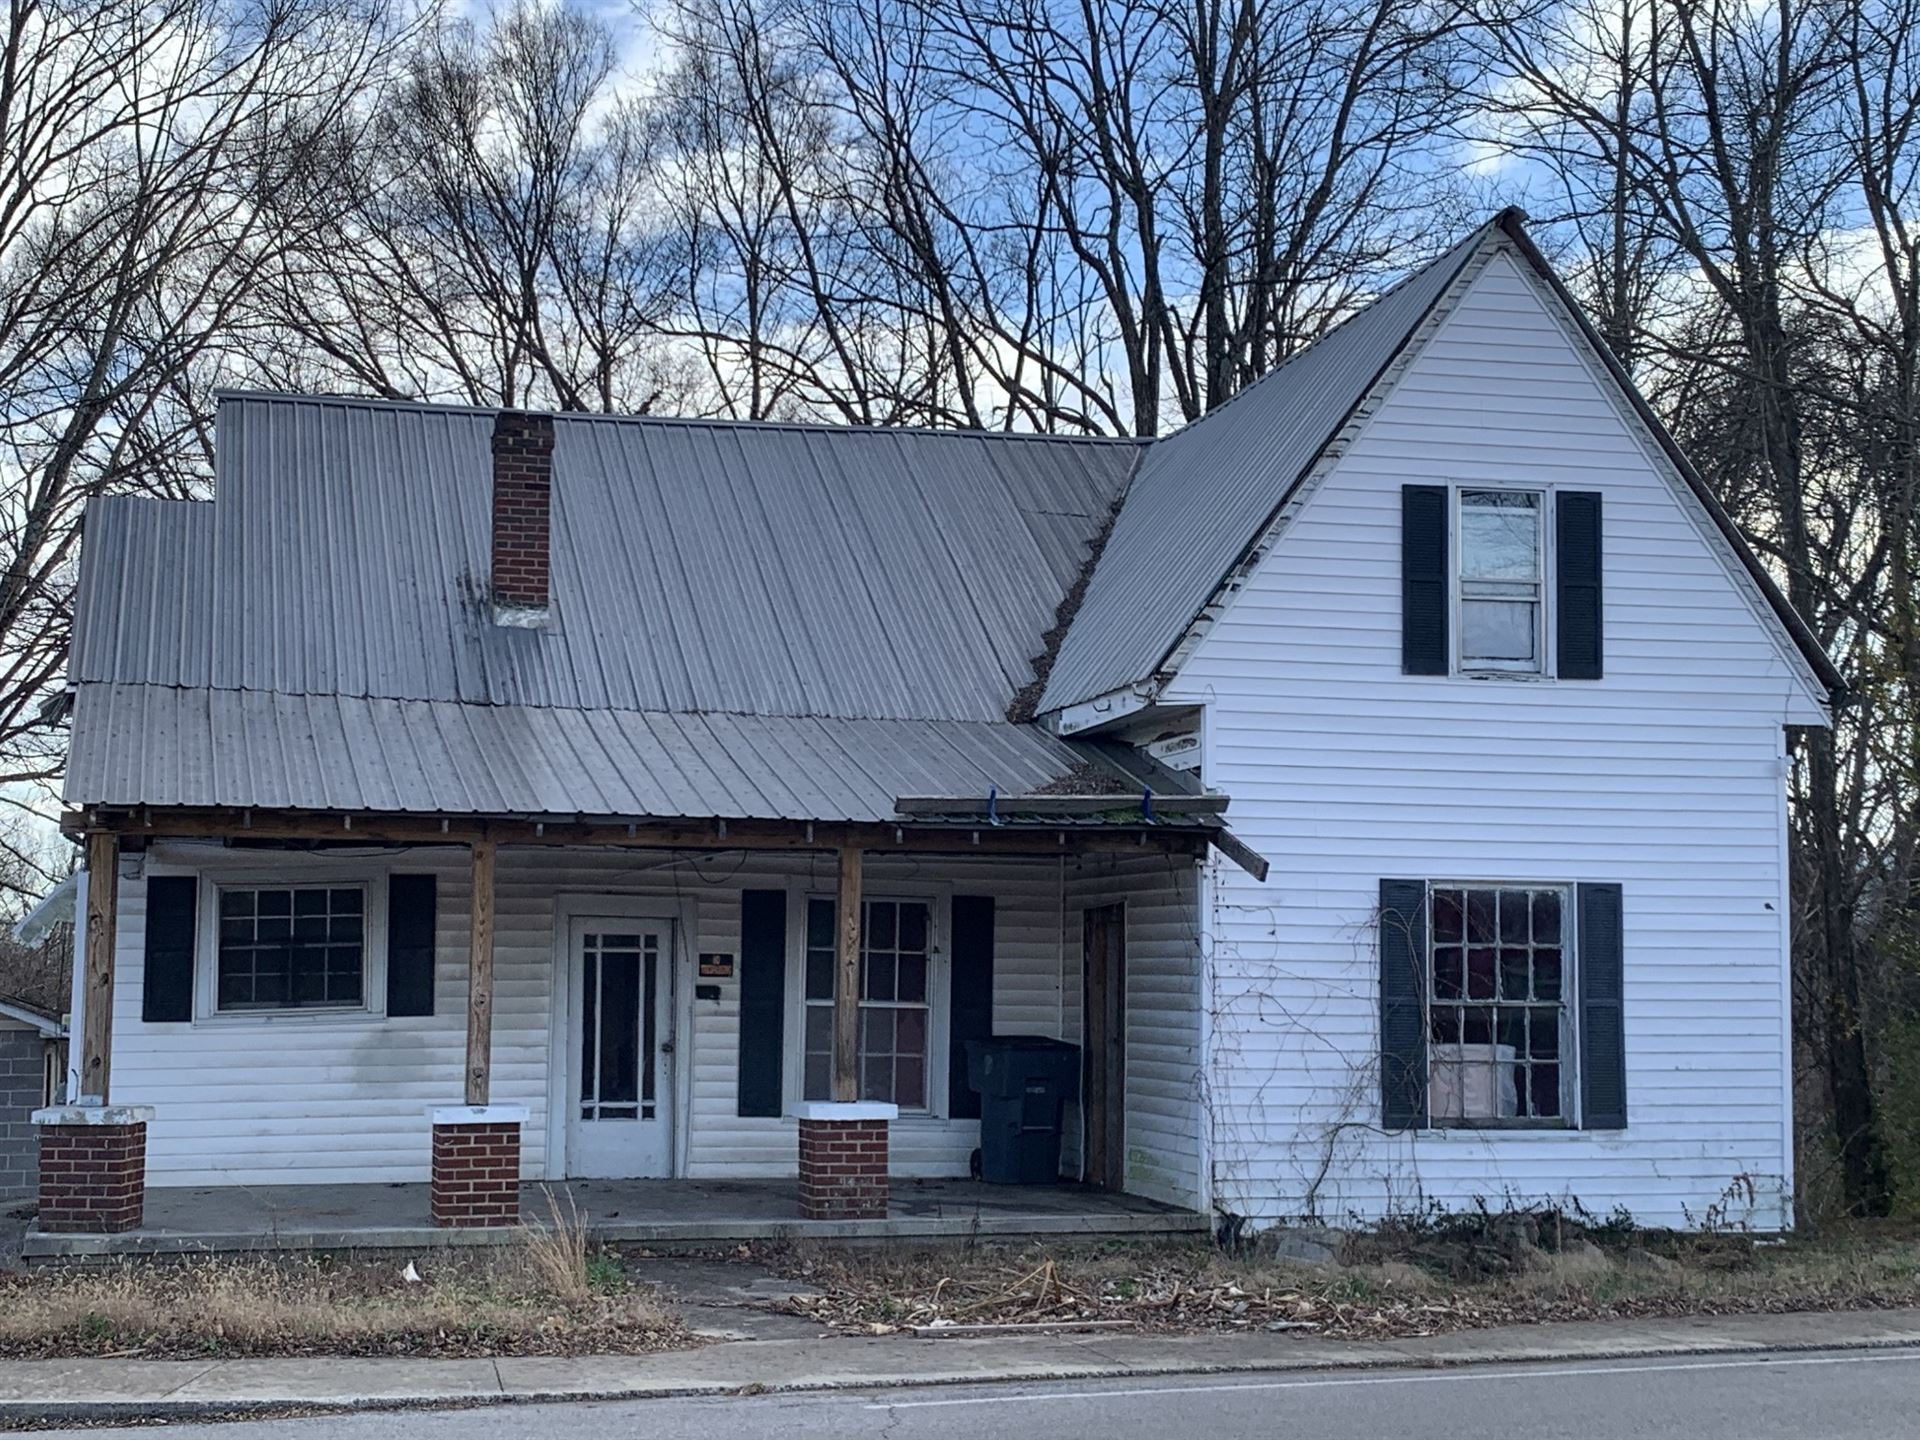 630 N Spring St, McMinnville, TN 37110 - MLS#: 2216440